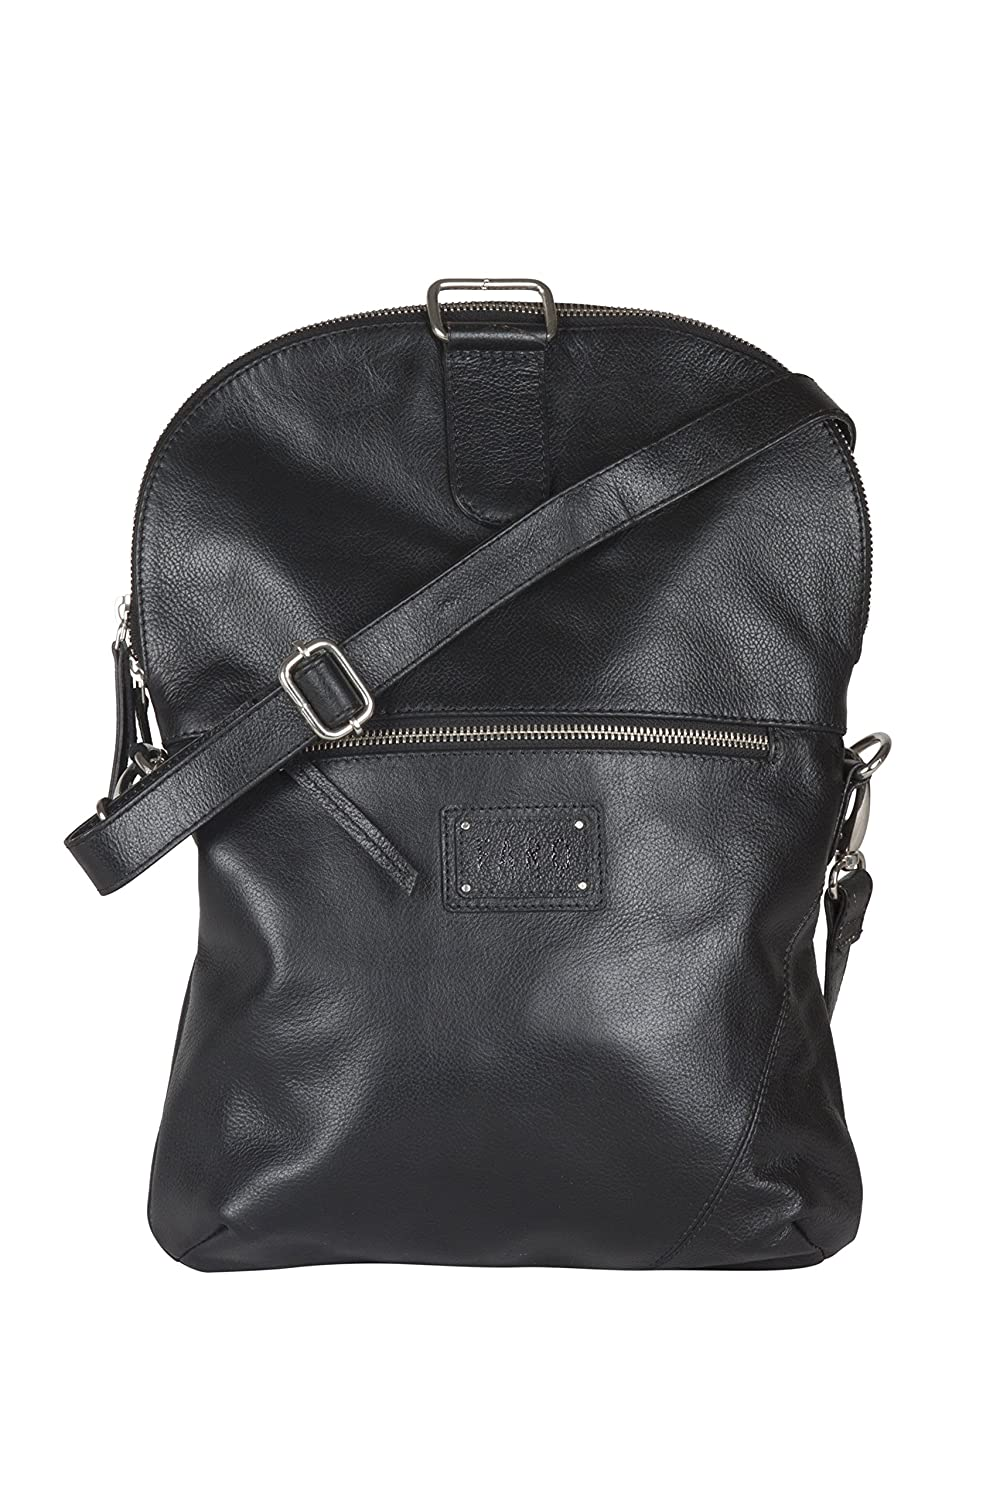 6323b09bfd Faro for Chokore Coco Women s Black Genuine Leather Solid Backpack   Amazon.in  Bags